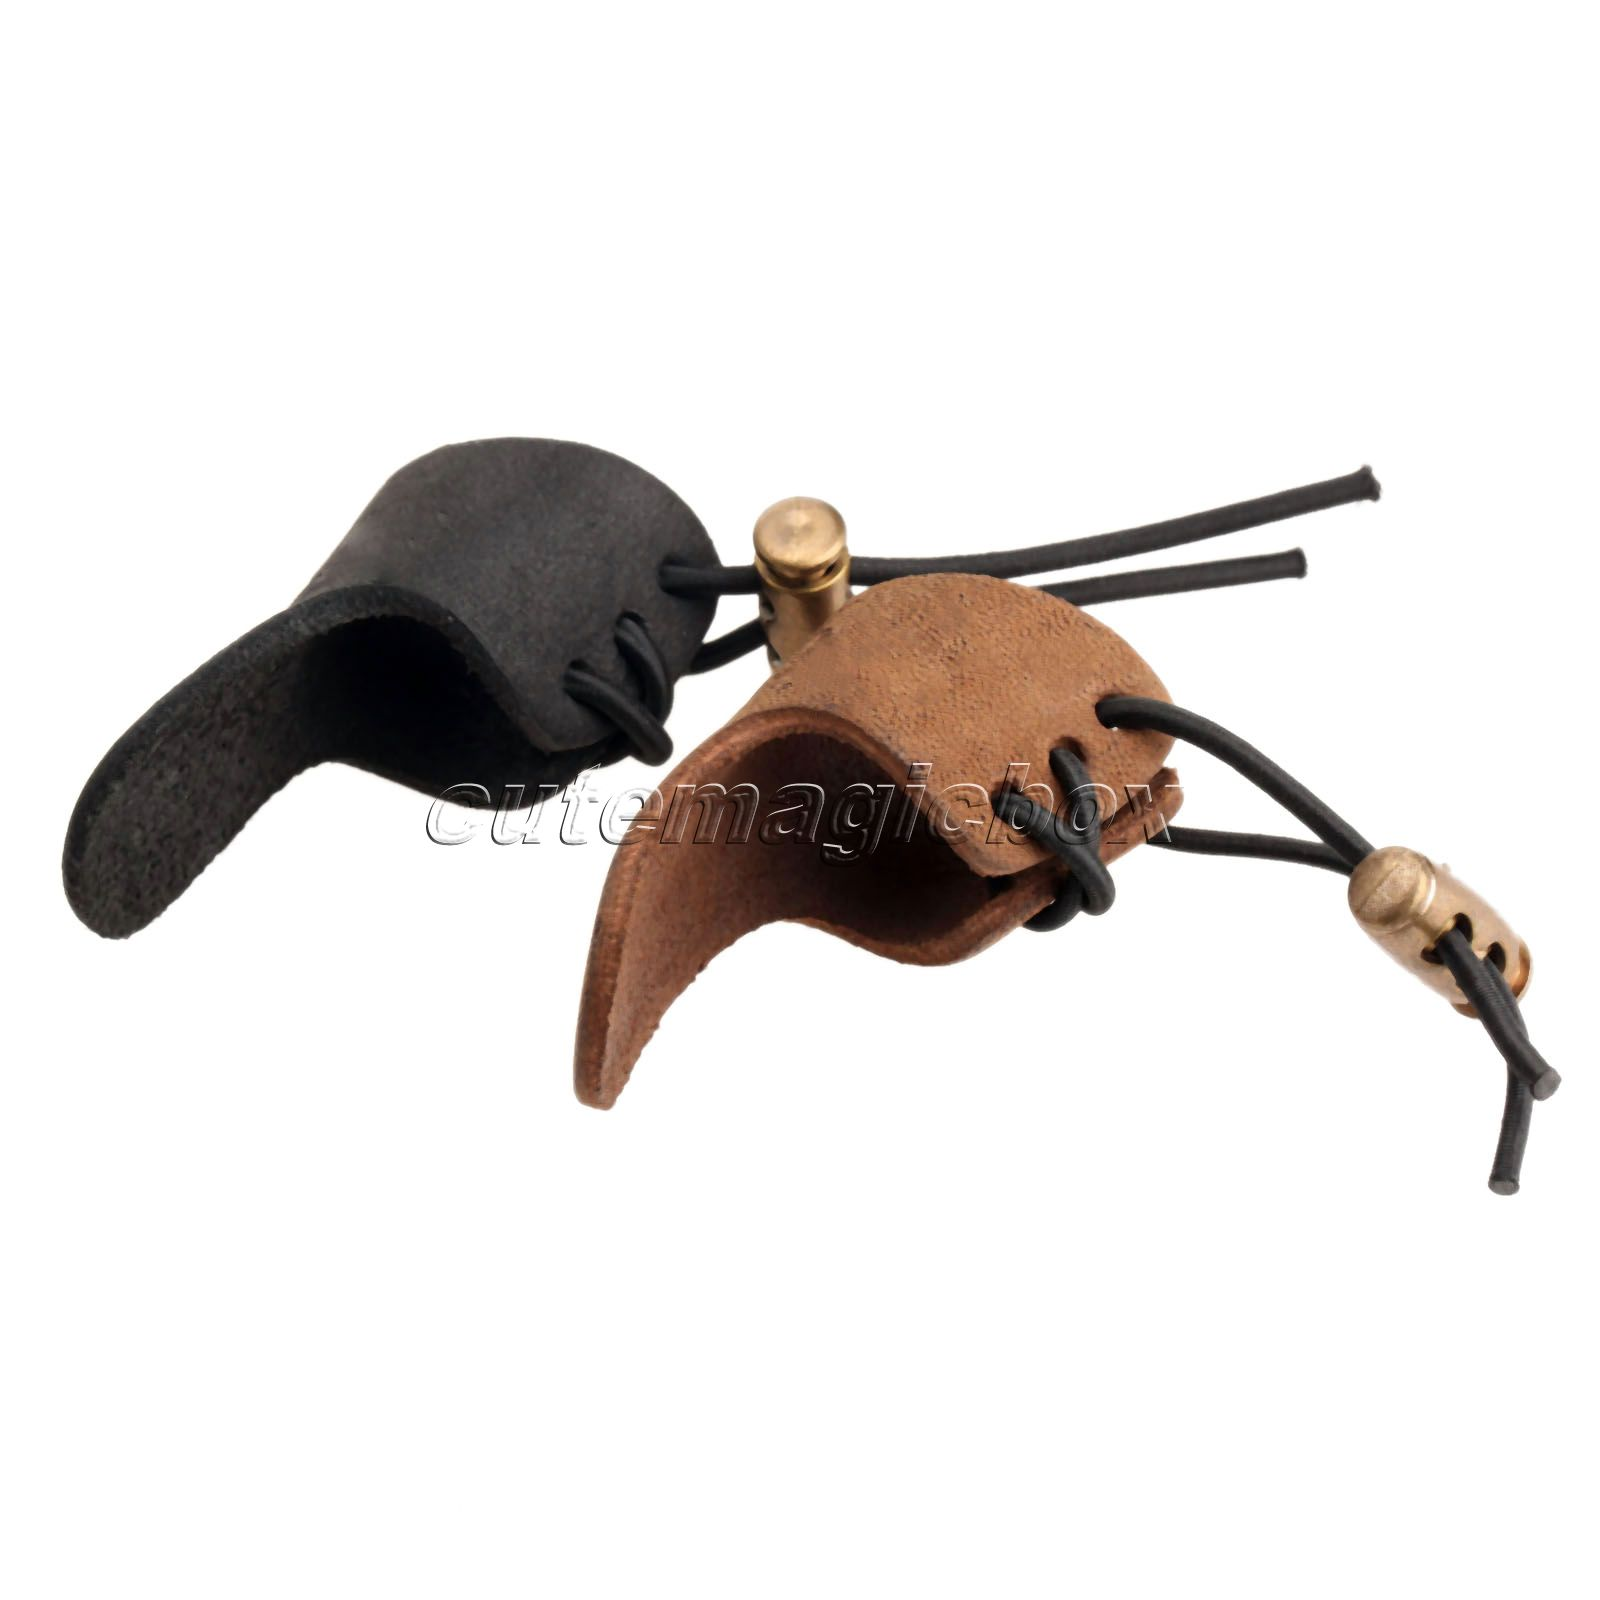 Cow Leather 1 Finger Bow Arrow Broadheads Archery Hunting Shoot Glove Thumb Finger Tip Protector Guard Pull Archery Black Brown(China (Mainland))